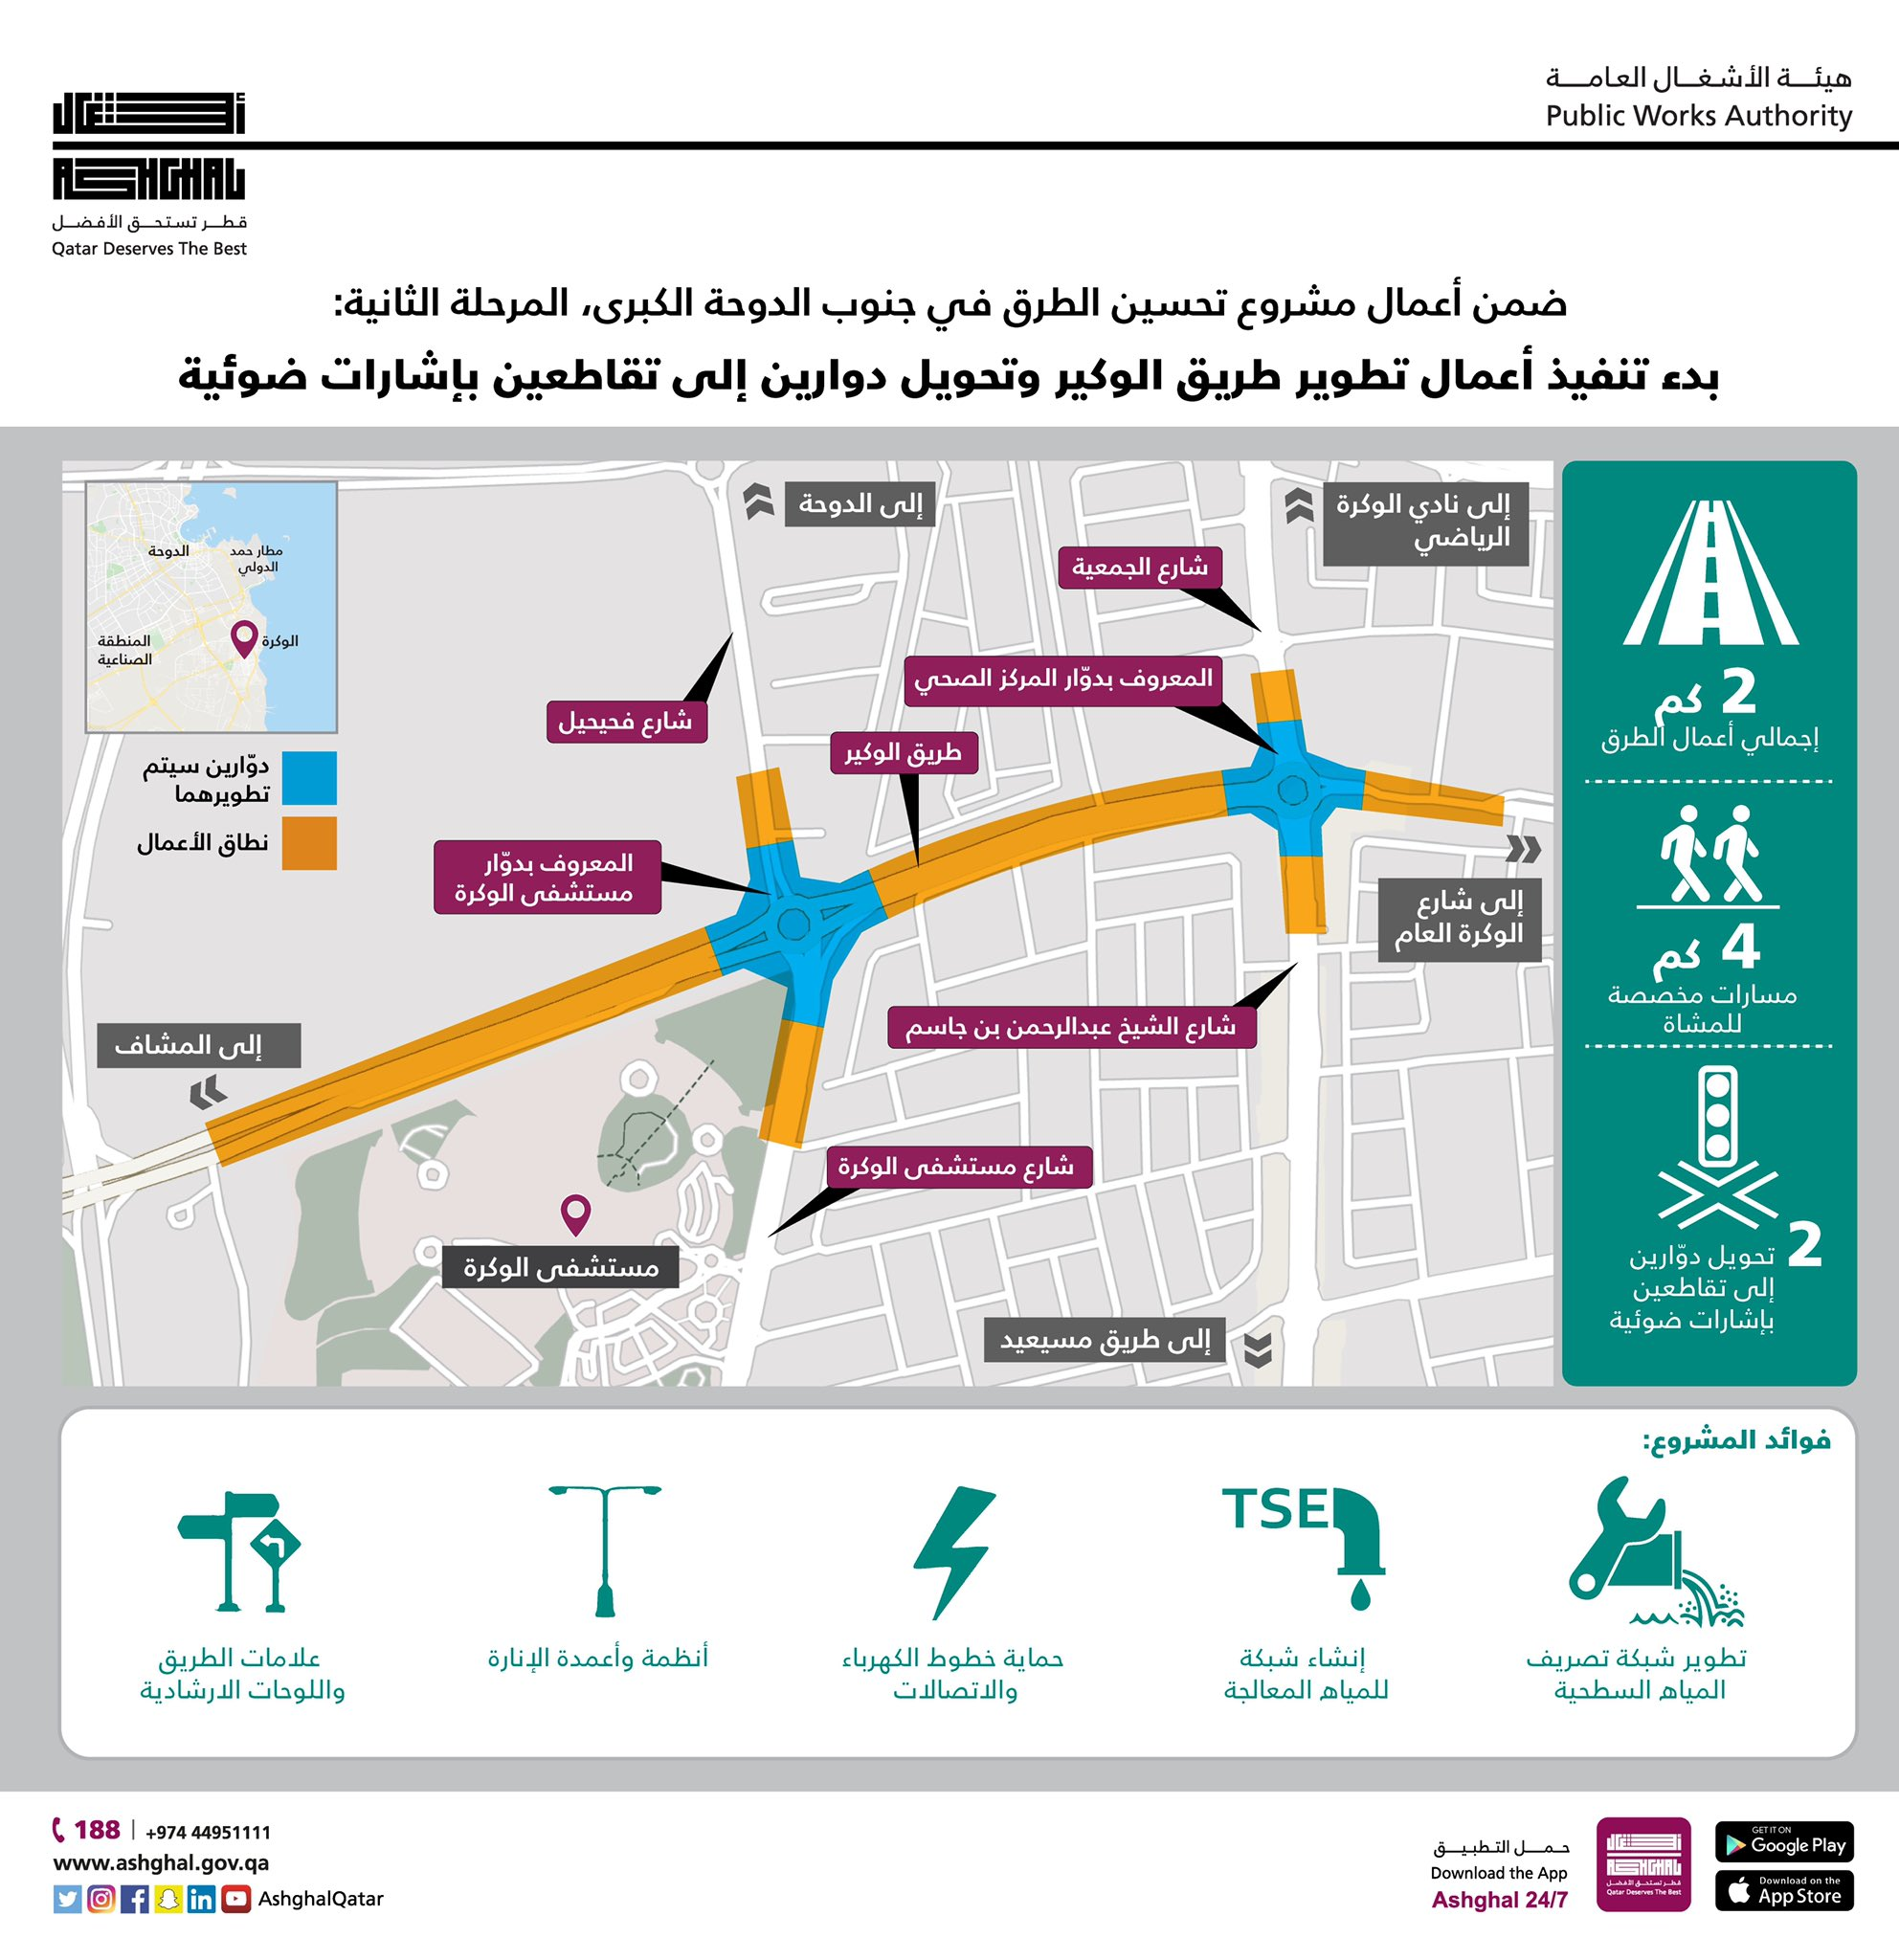 Second Phase of Upgrading Works on Al Wukair Road Commences